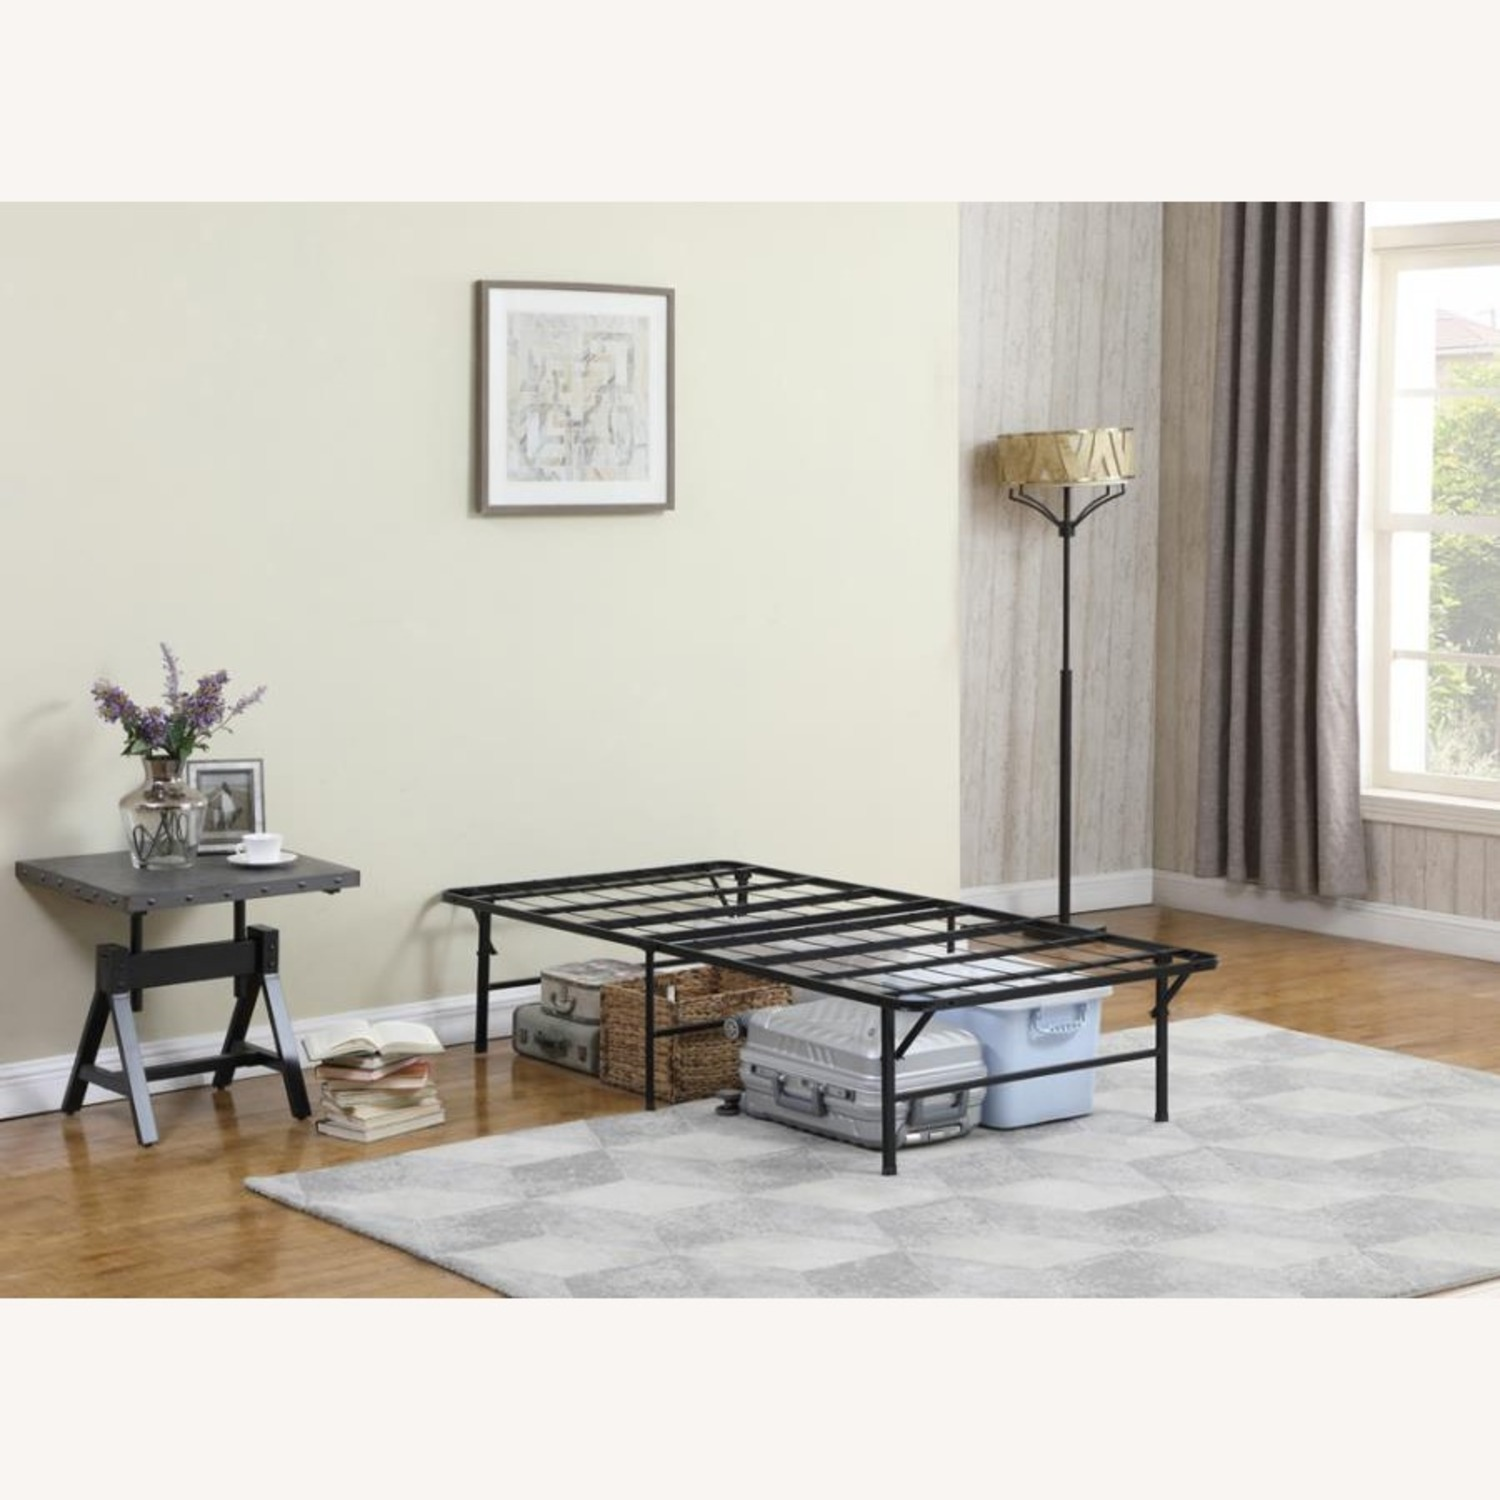 Twin XL Platform Bed In Black Powder Coated Finish - image-5